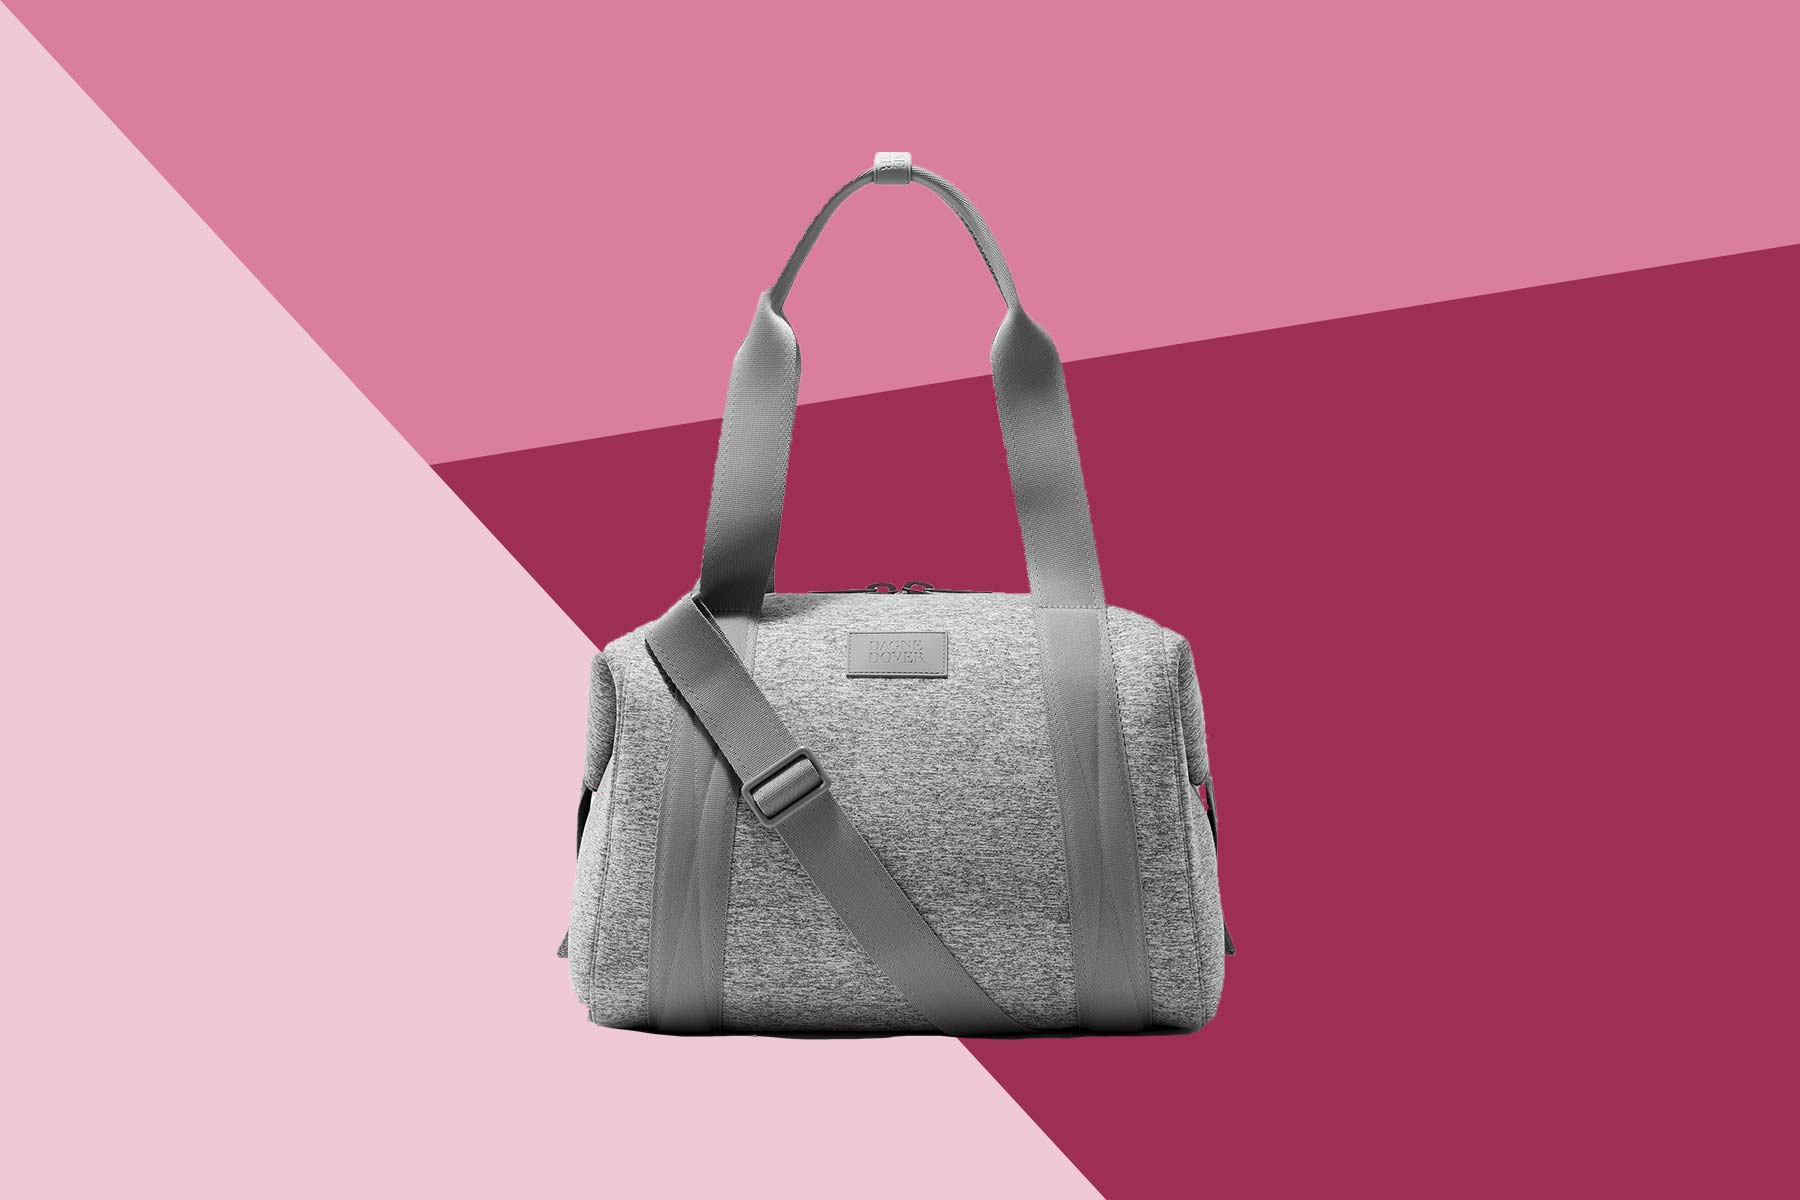 gray dagne dover gym bag